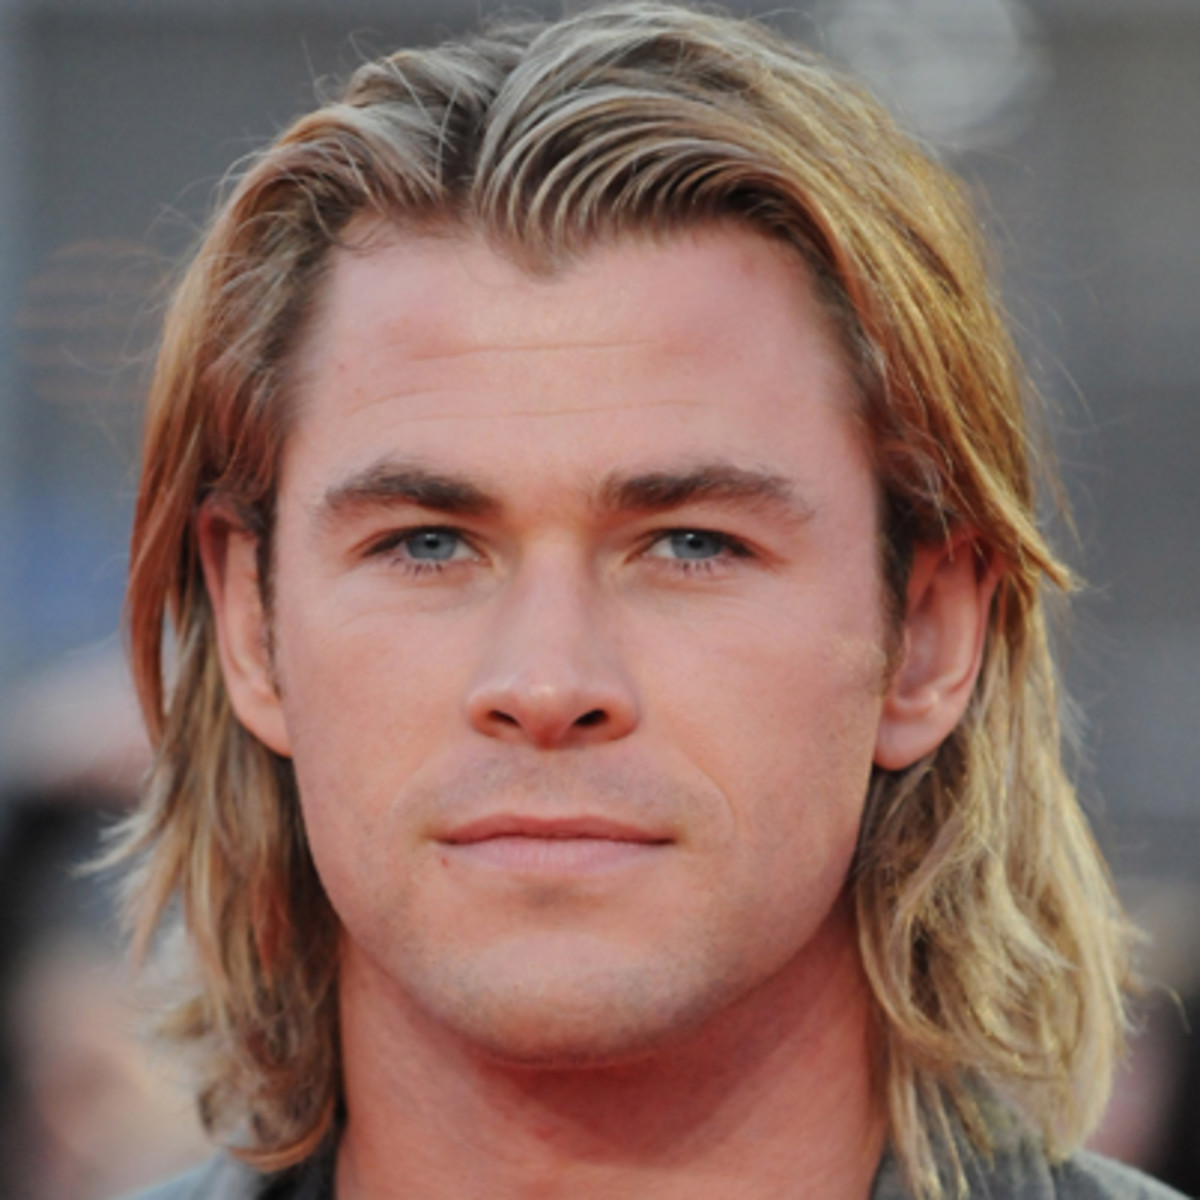 David Beckham Wallpapers With Quotes Chris Hemsworth Biography Biography